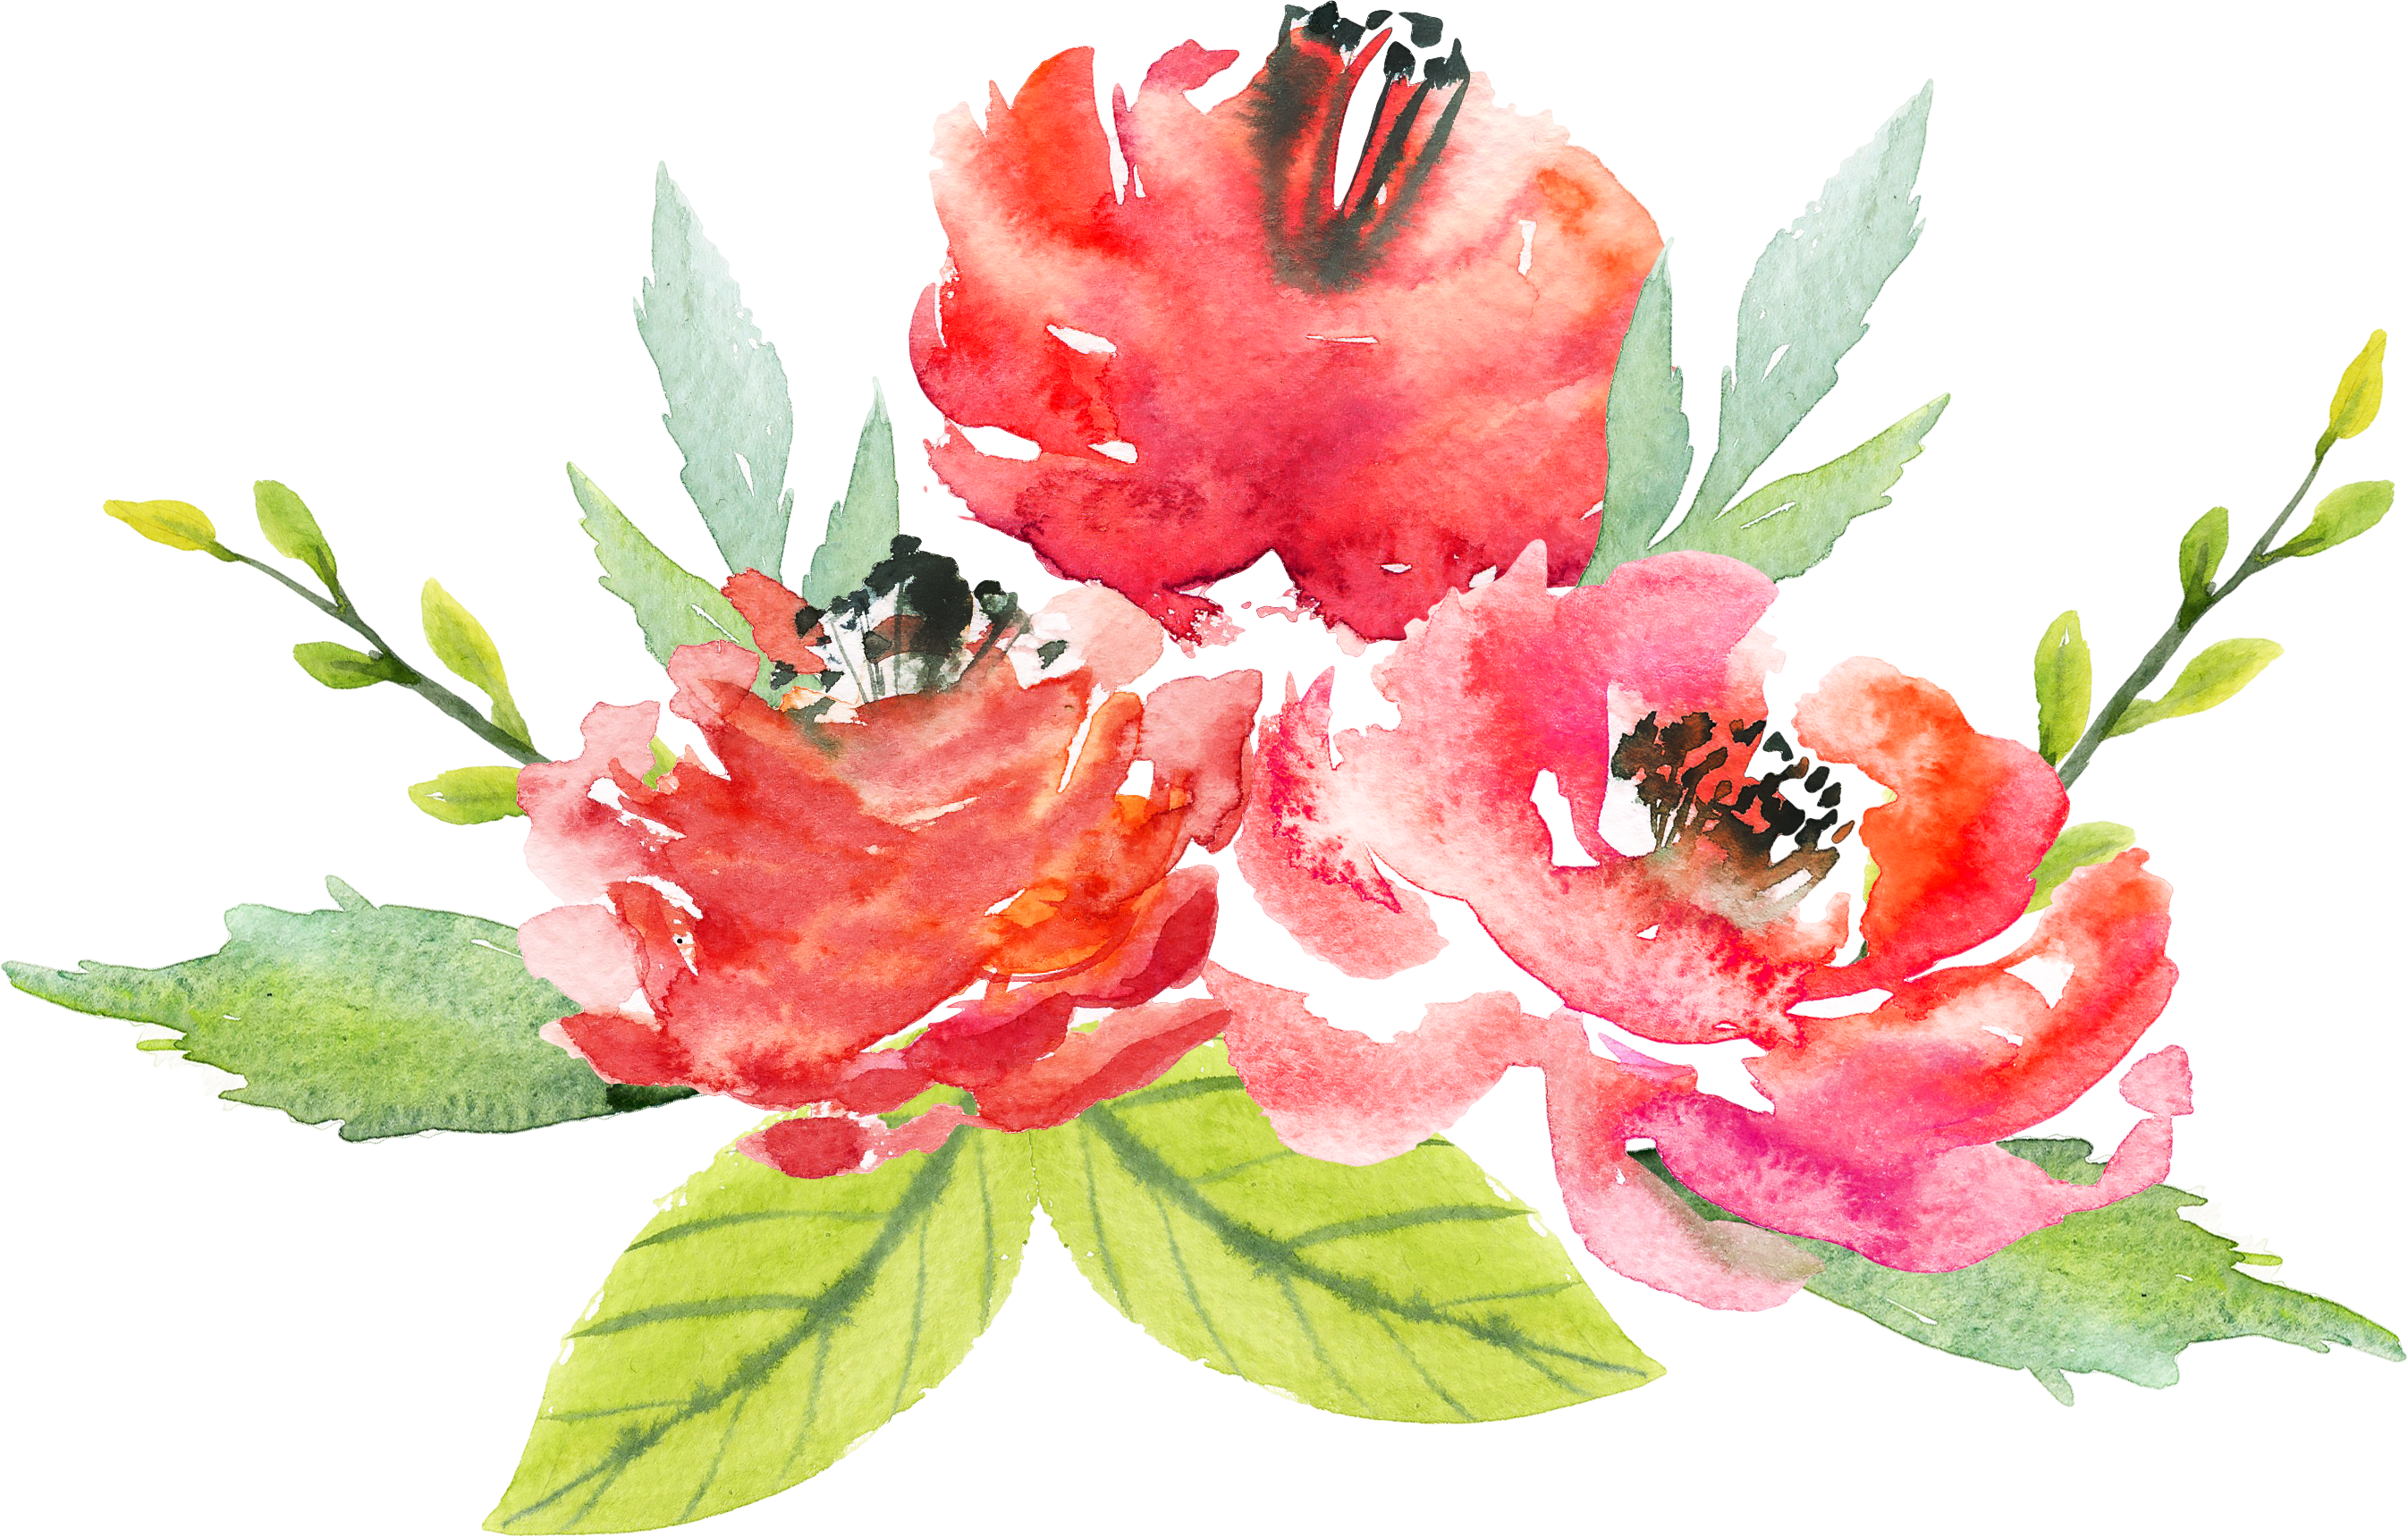 Watercolor flowers png. Floral design flower painting